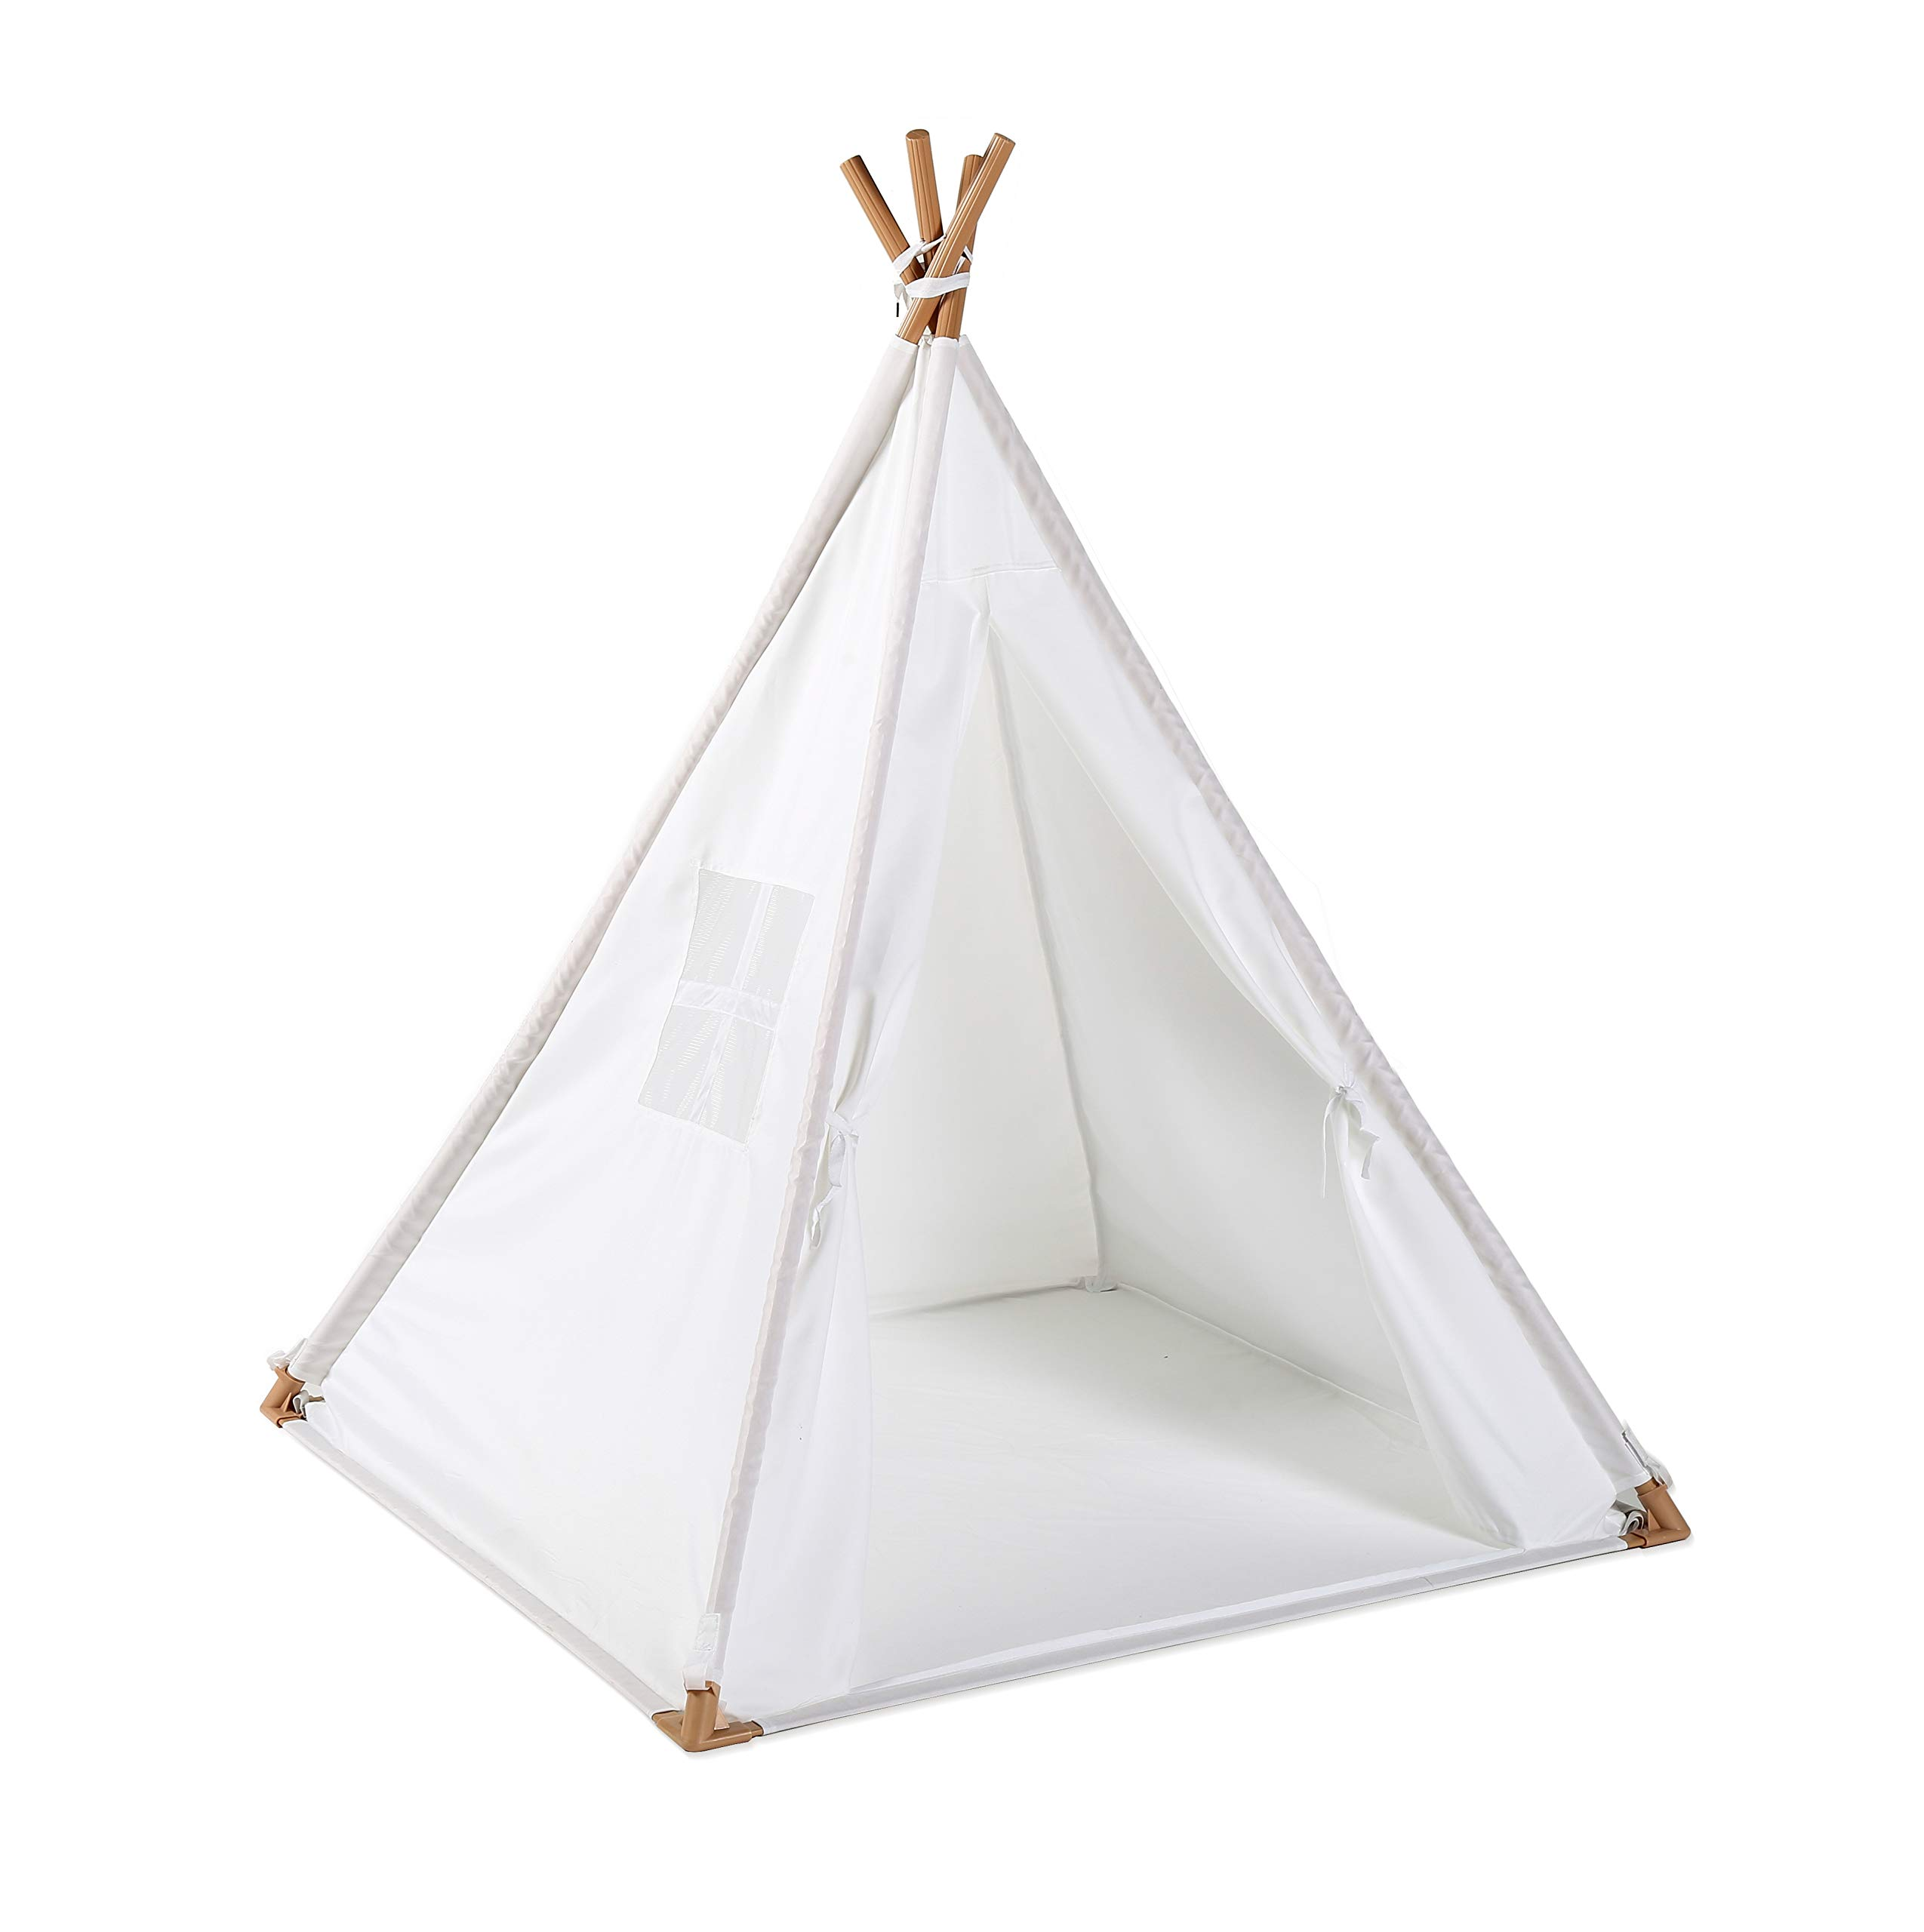 Utex Kid'S Teepee Tent, Indoor Outdoor Play House ,Floor Mate, Indian Teepee Playhouse Sleeping Dome Play Tent W/Zipper Carry Bag for Boys ,Girls by UTEX